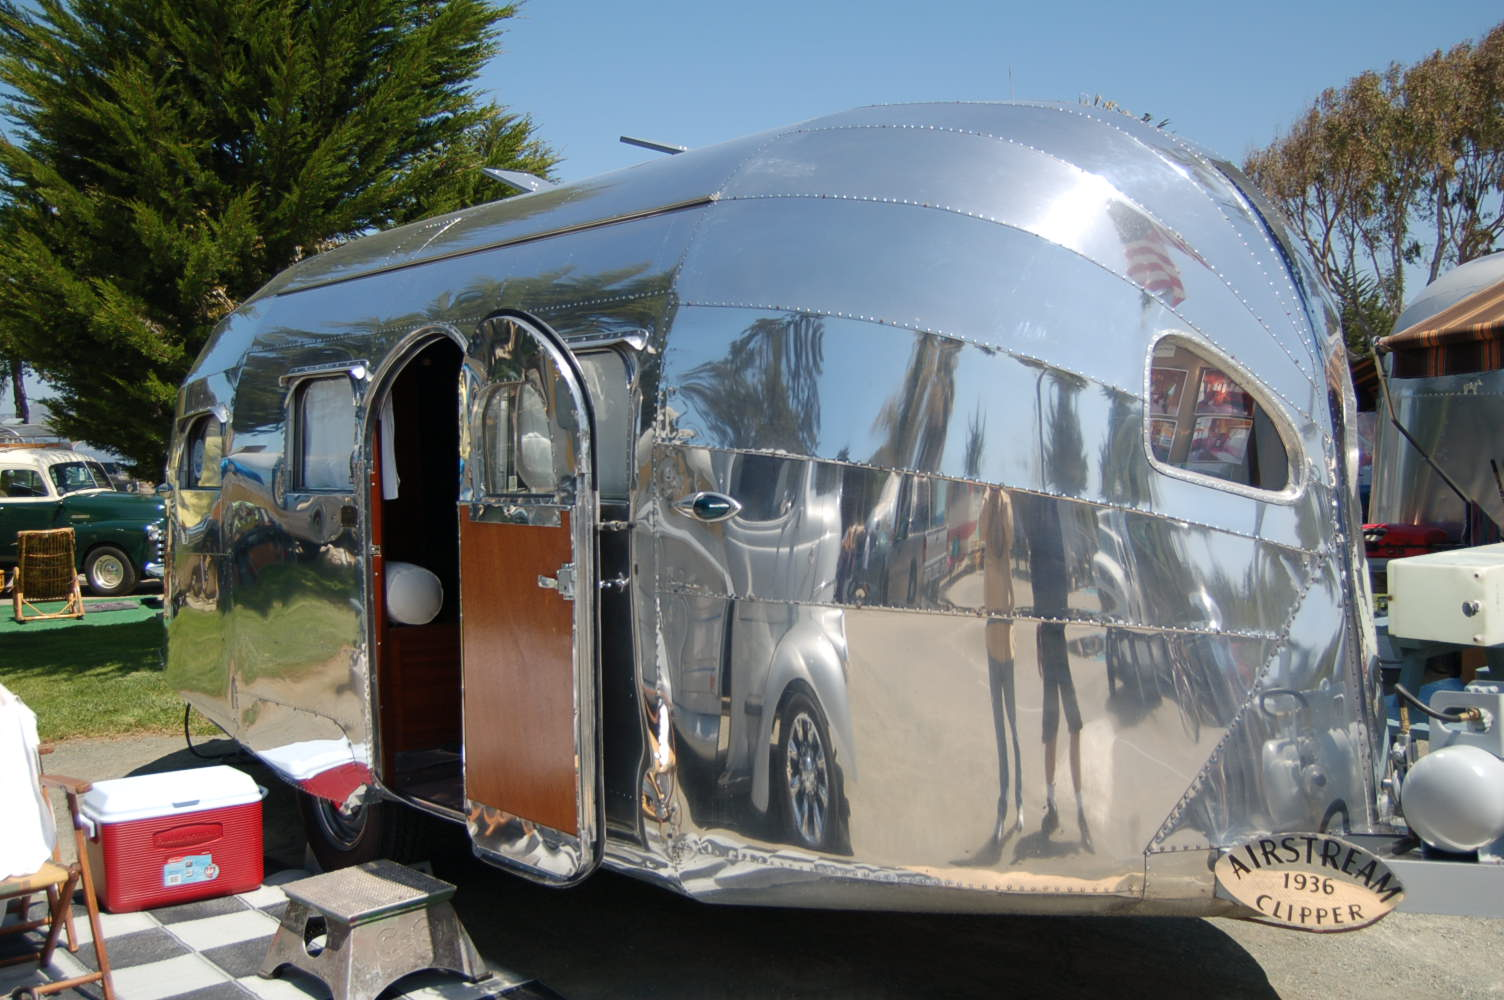 Rare 1936 Airstream Clipper Showing The Beautiful Side Door Wood Panel